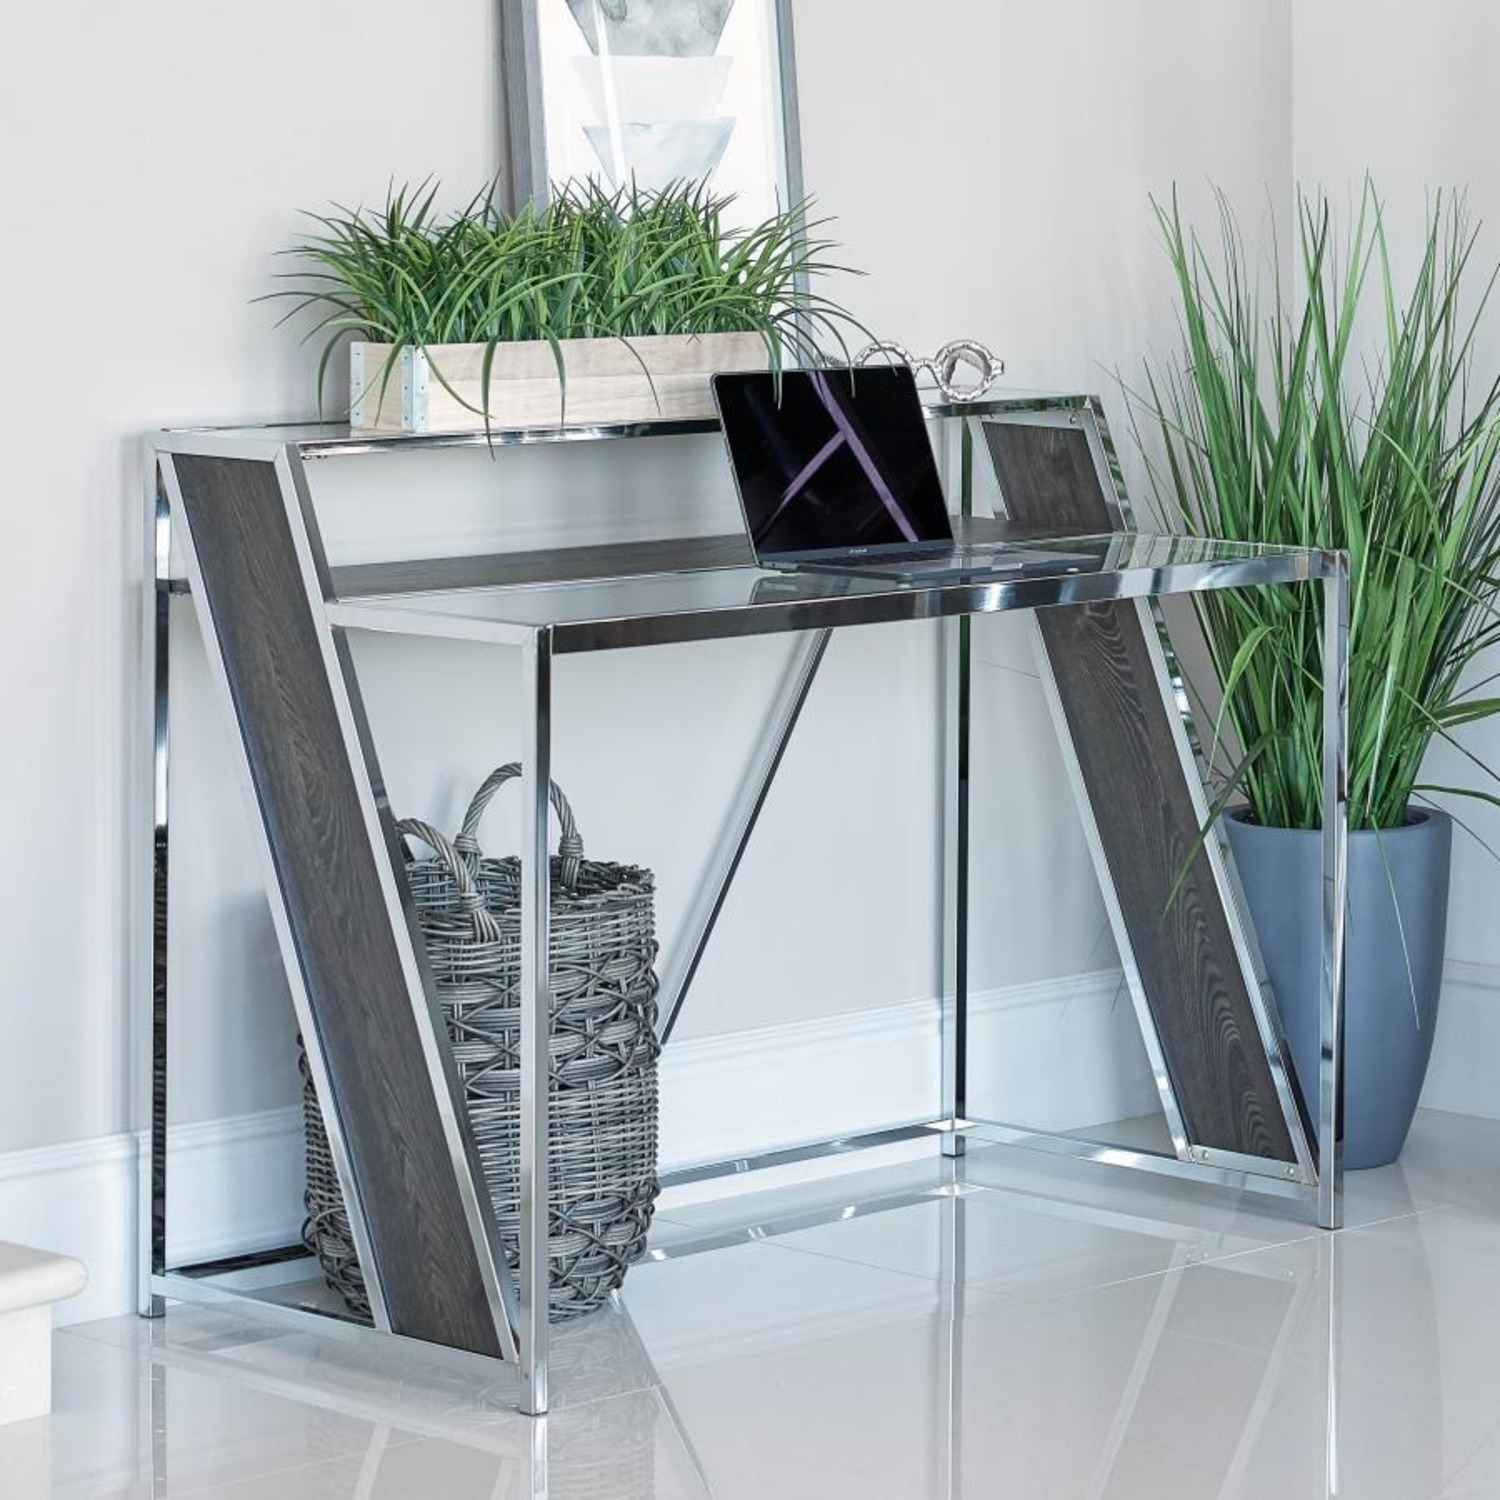 Writing Desk In Chrome W/ Clear Tempered Glass  - image-1